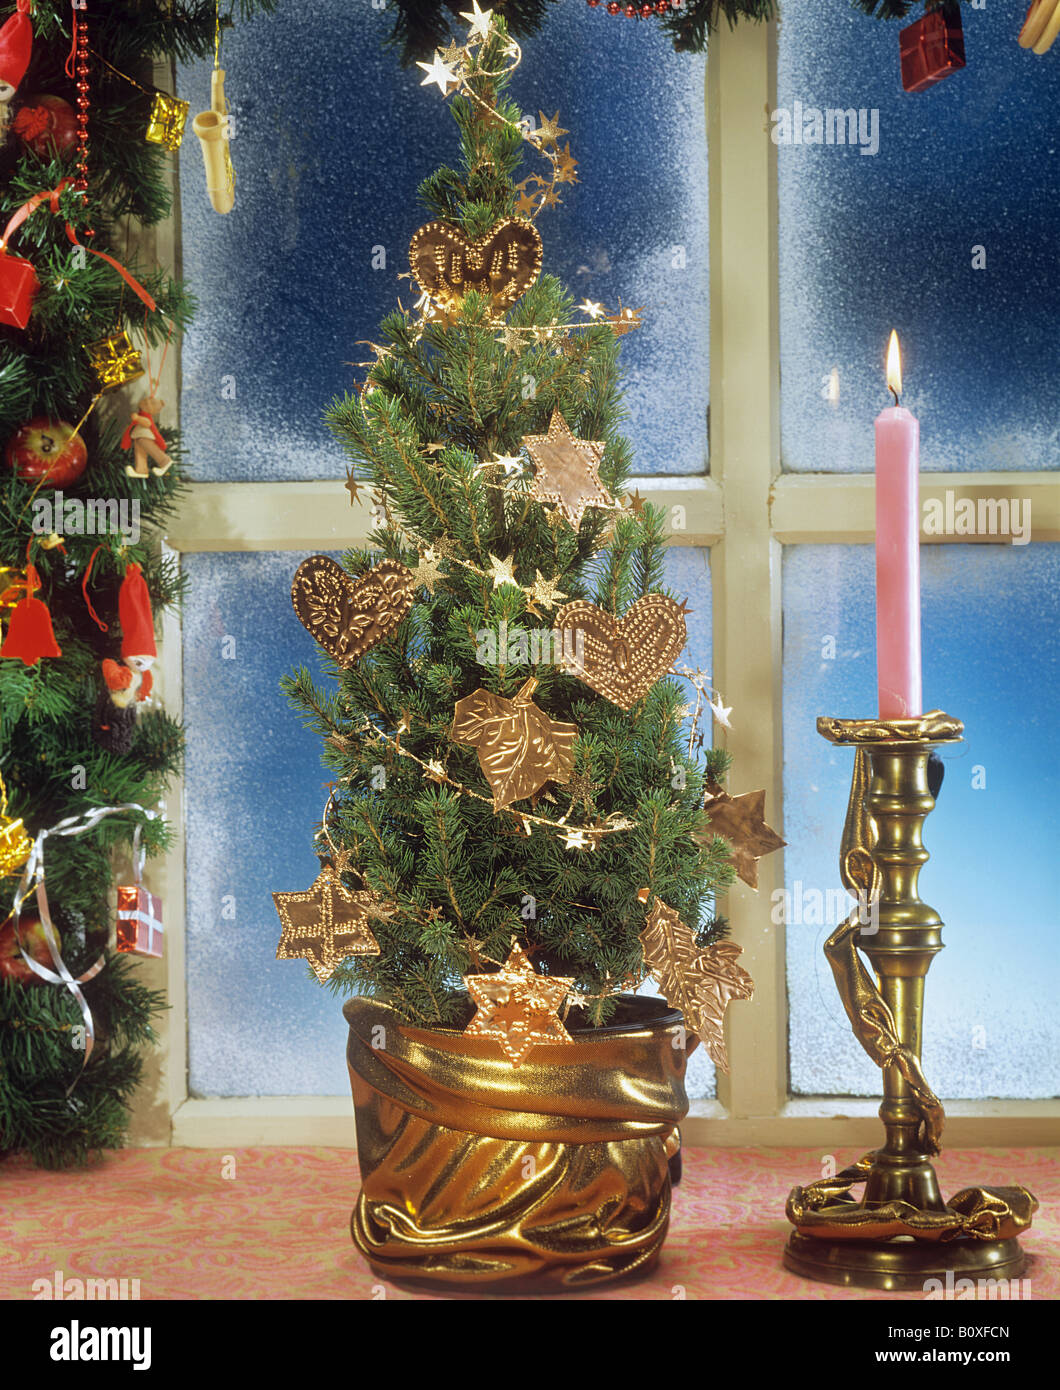 Christmas tree in pot - Stock Image